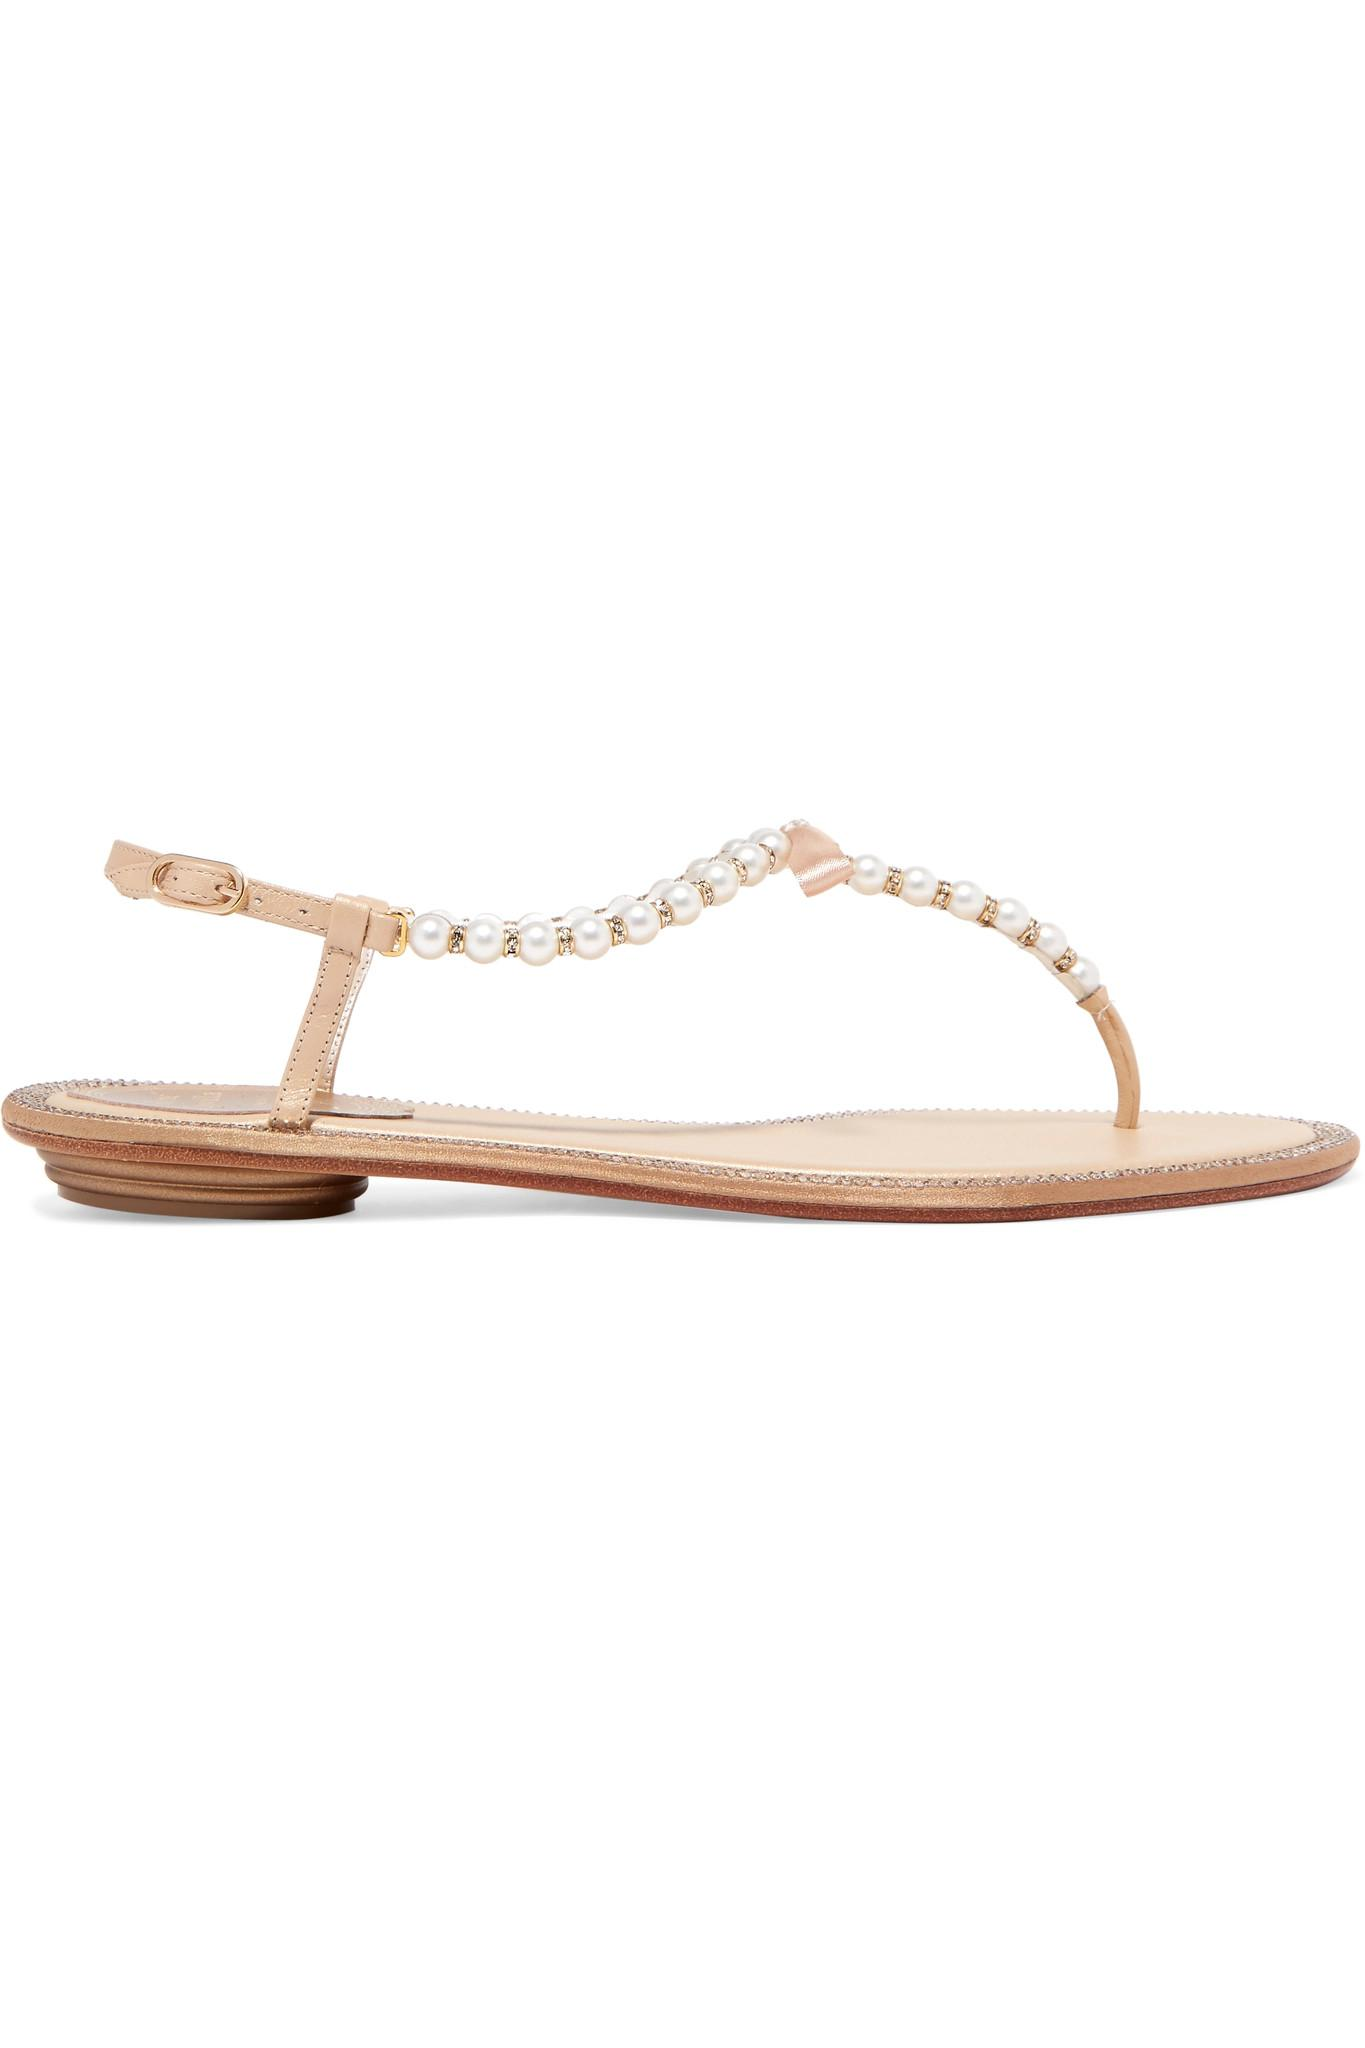 c92bf2786f983 Lyst - Rene Caovilla Eliza Embellished Leather Sandals in White ...